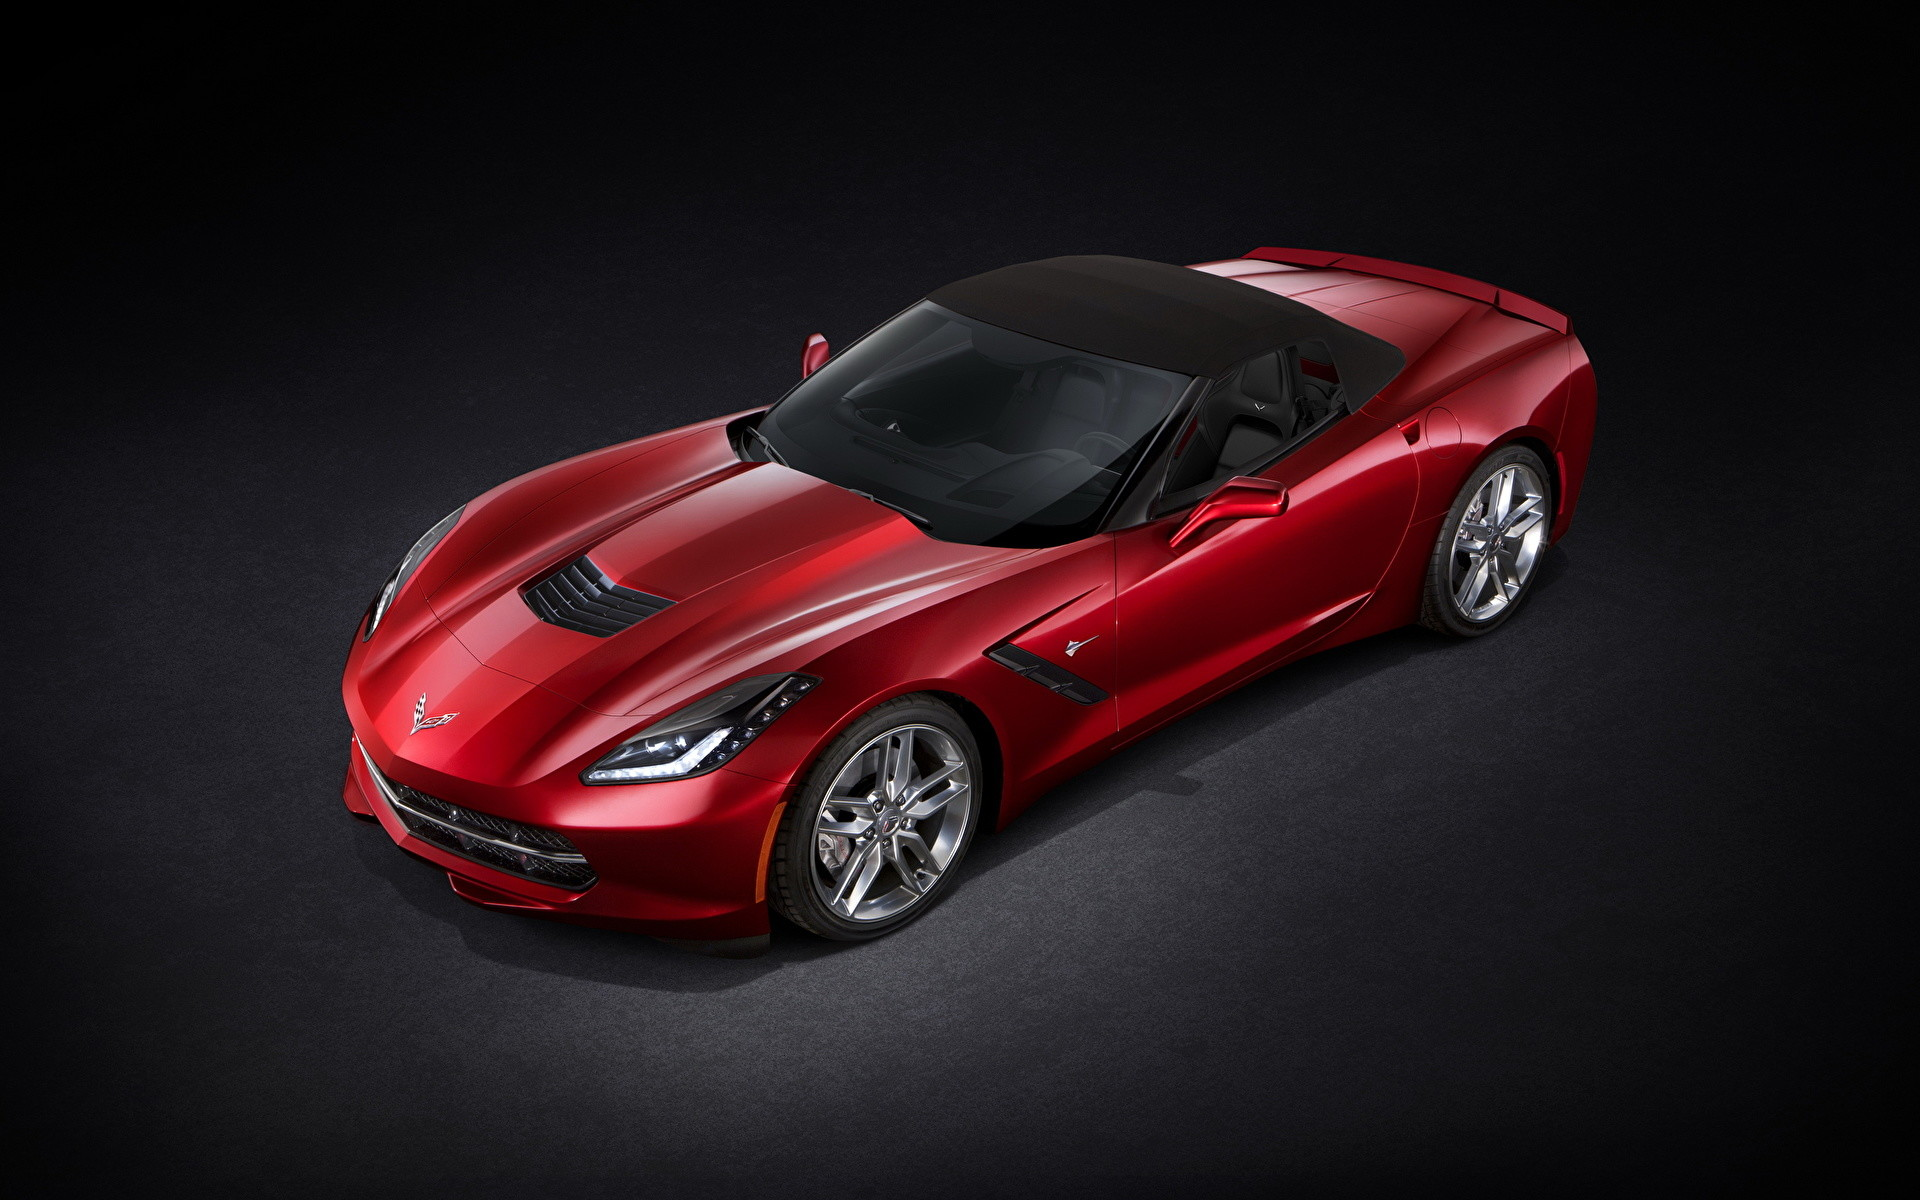 1920x1200 Wallpaper Chevrolet Corvette C7 Stingray convertible Red auto   Cars automobile